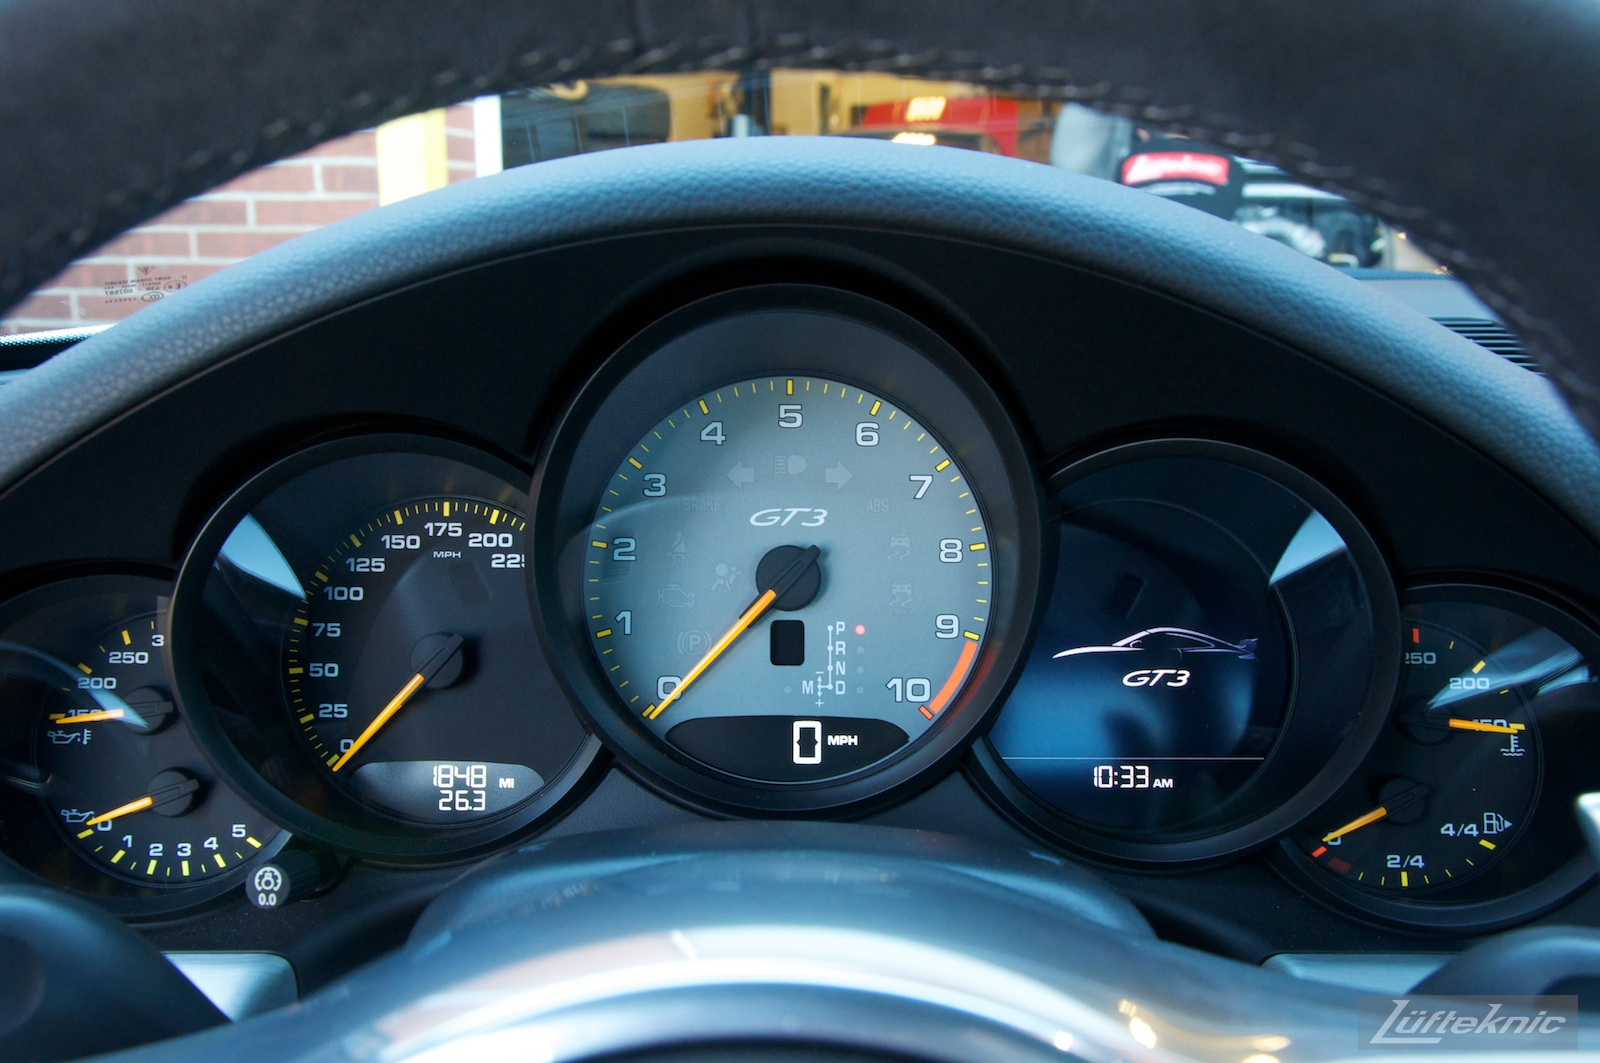 Interior gauges with the central tachometer on the Lüfteknic Porsche 991 GT3